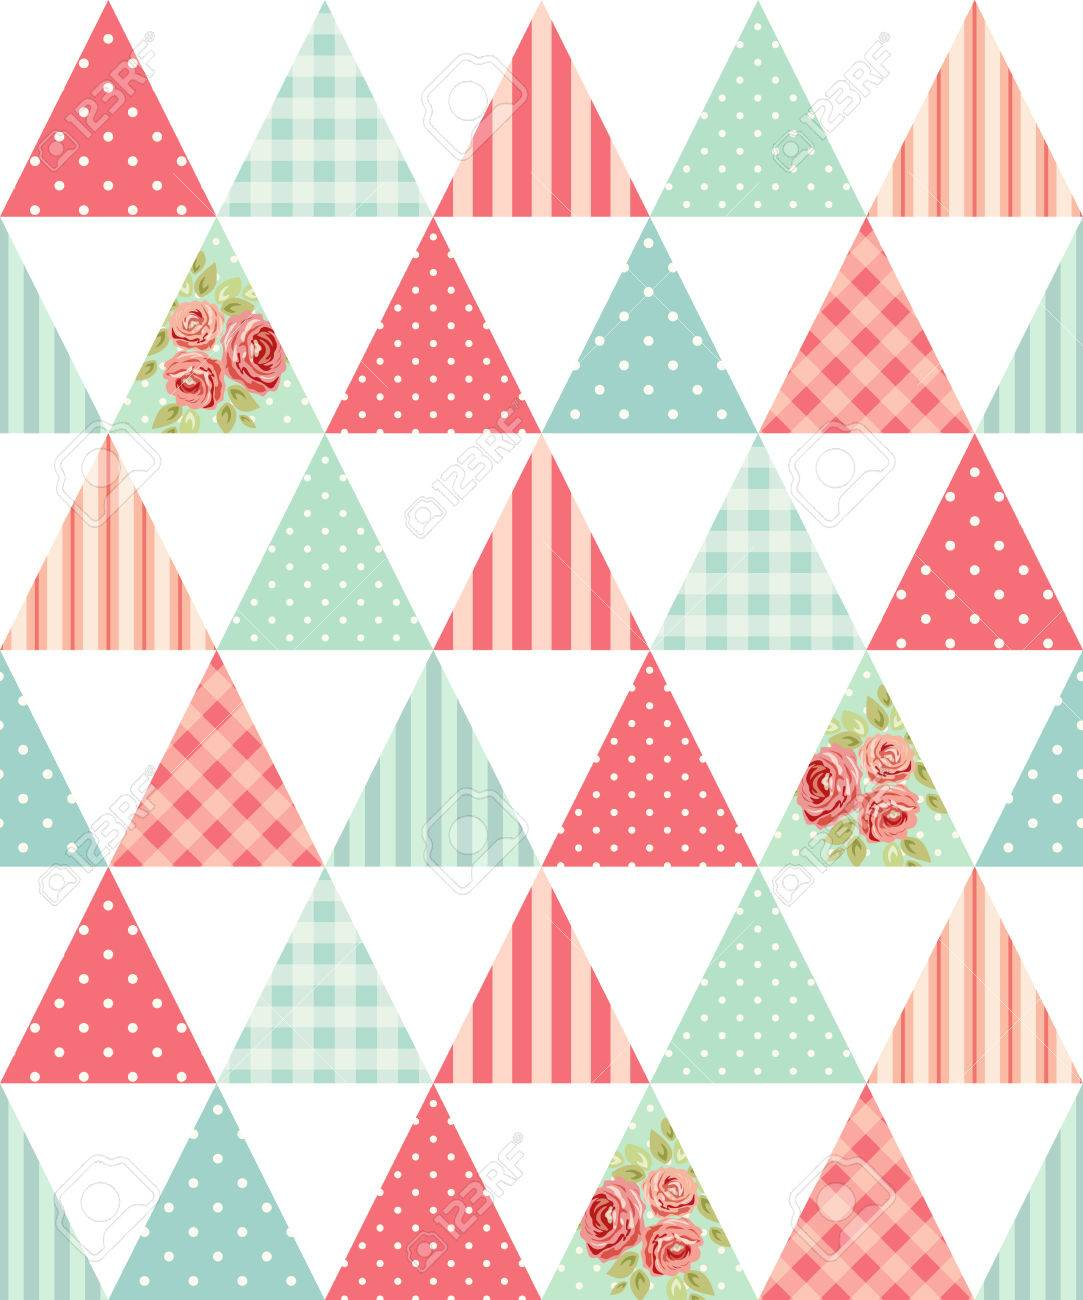 Cute seamless vintage pattern as patchwork in shabby chic style ideal for kitchen textile or bed linen fabrics - 82769843